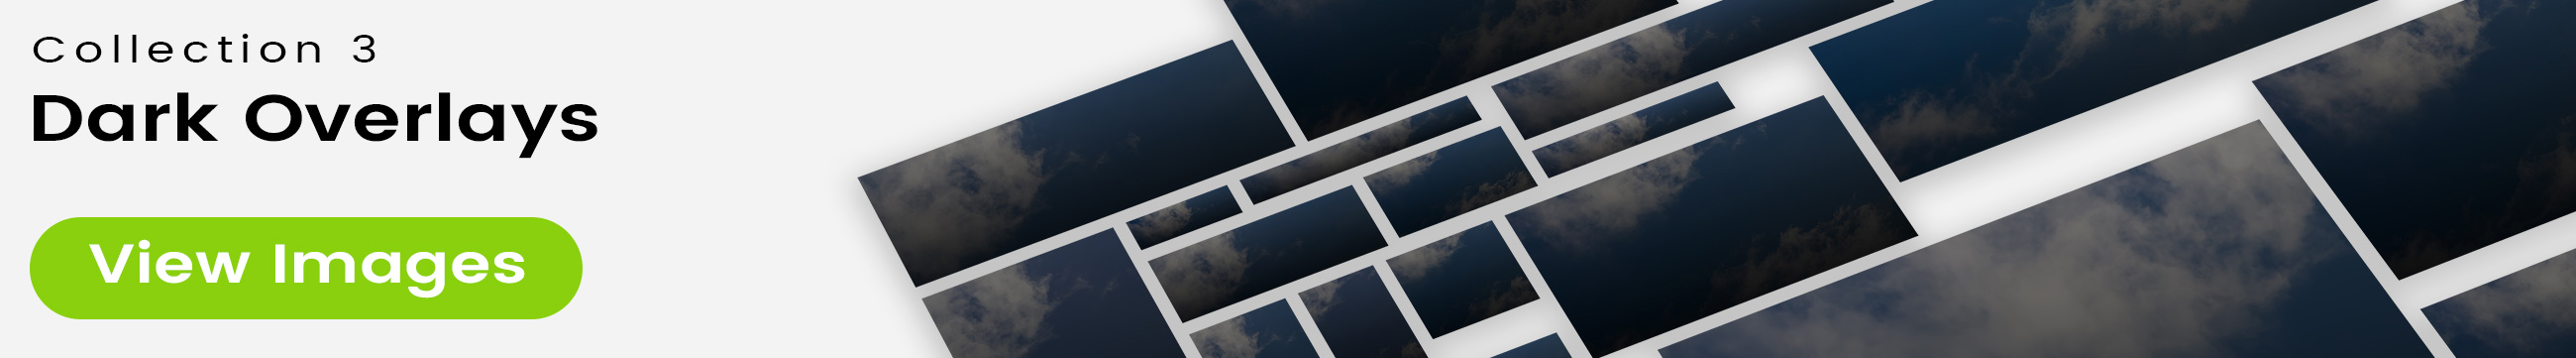 See 25 bonus images included with clouds stock image 9471. Collection 3 of 4 features a dark overlay design.